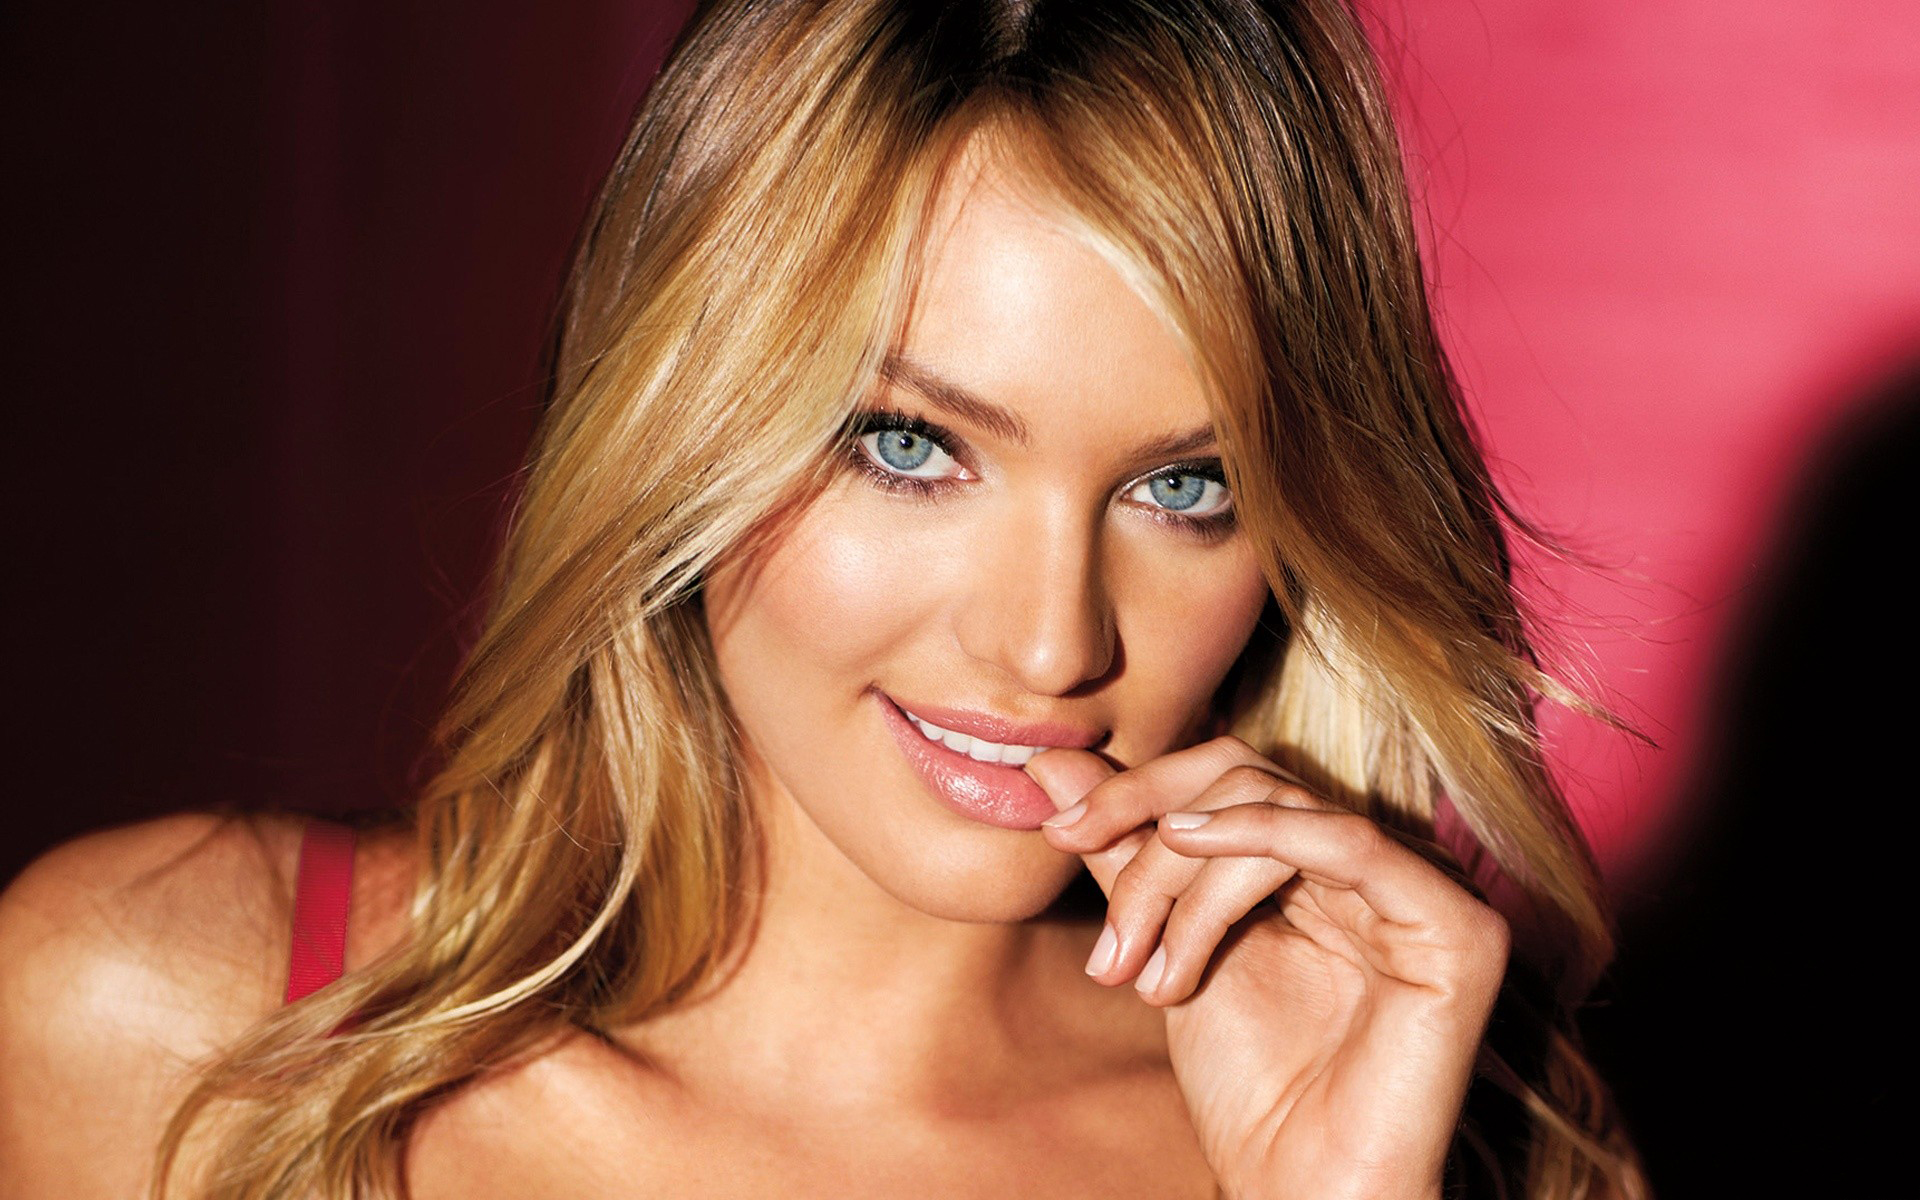 candice swanepoel hot 26501